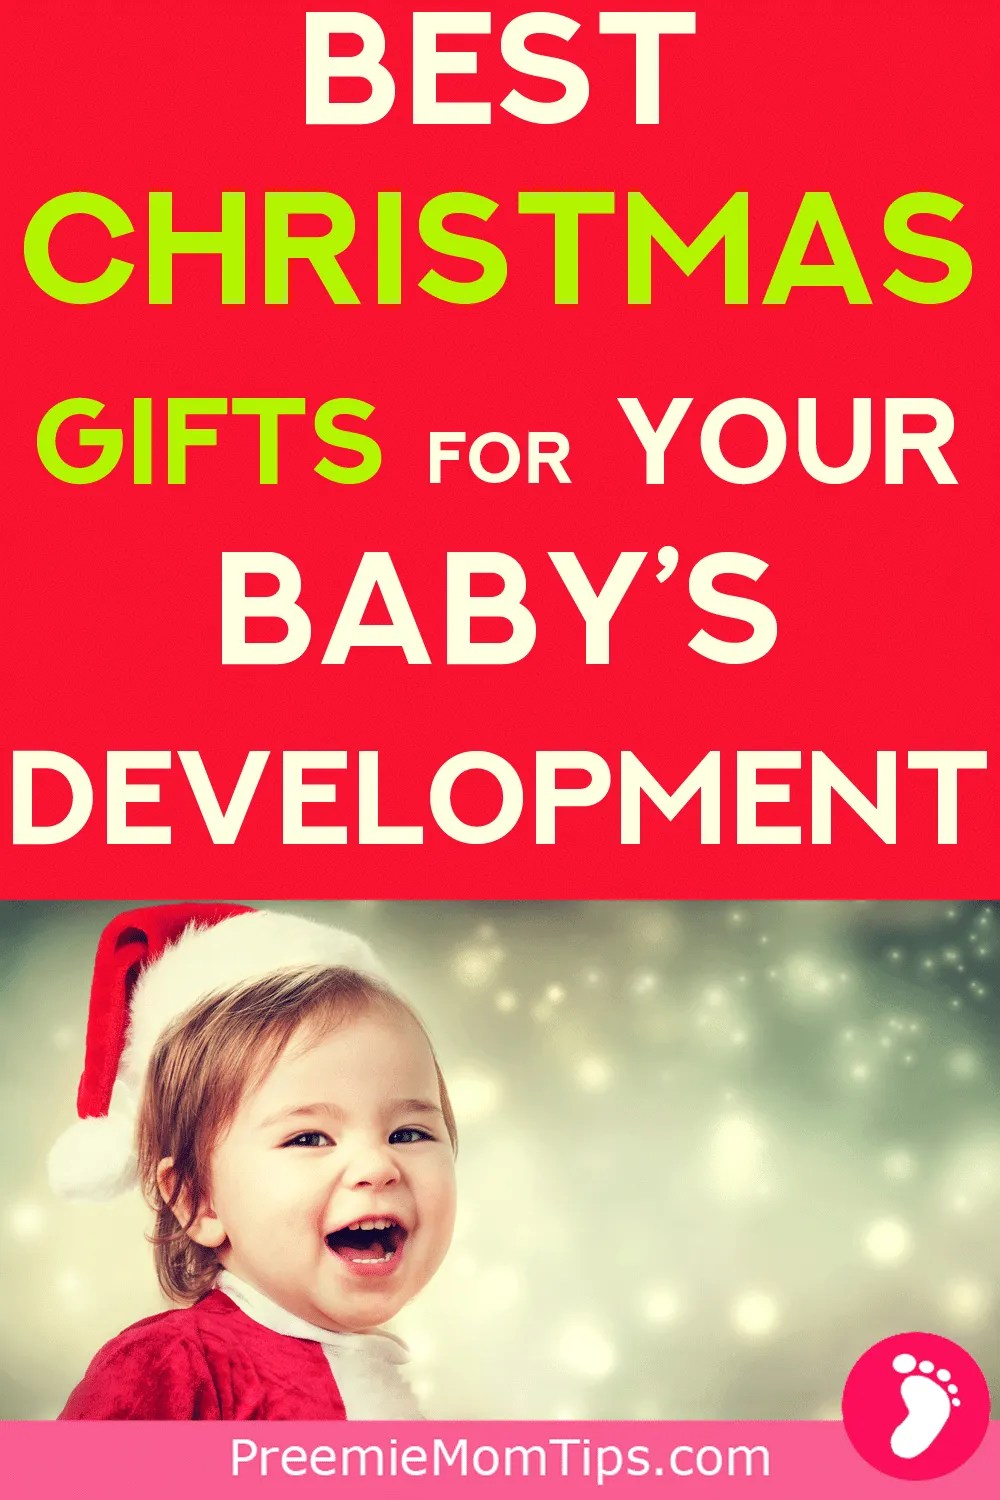 Check out these perfect gift ideas for your baby's first Christmas, they are perfect to help your baby's monthly development.